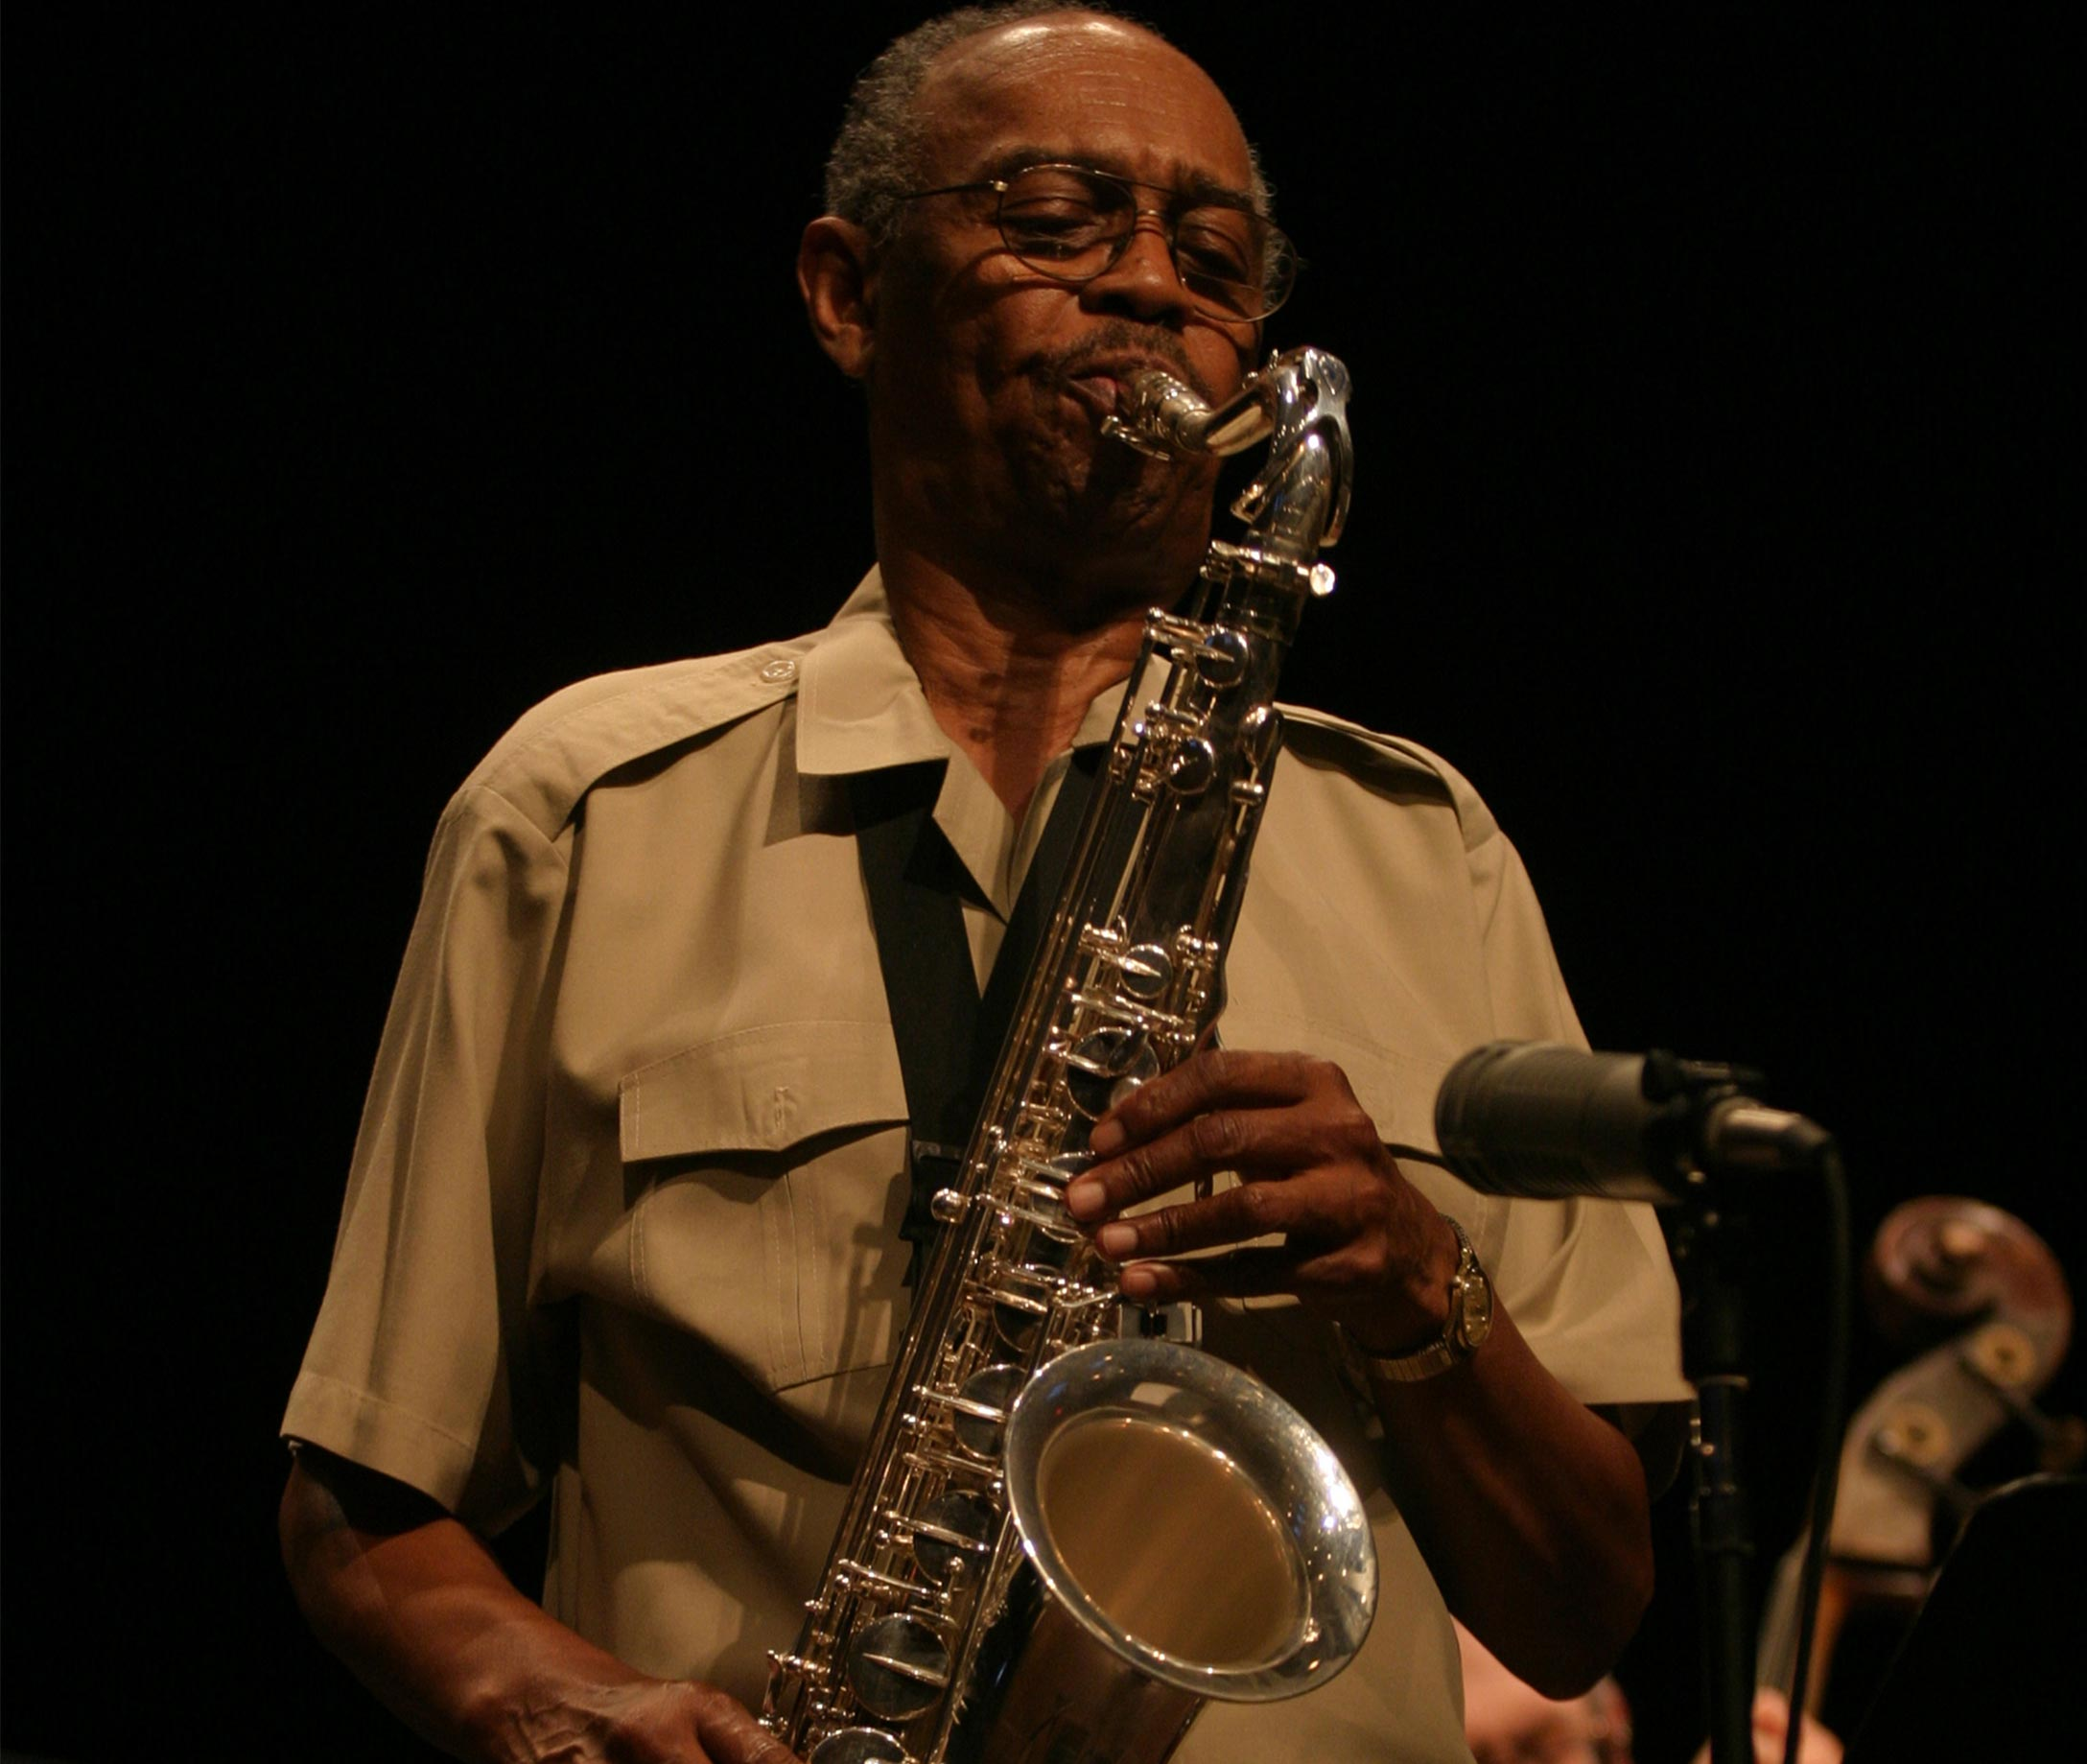 Tillis on stage playing the sax.